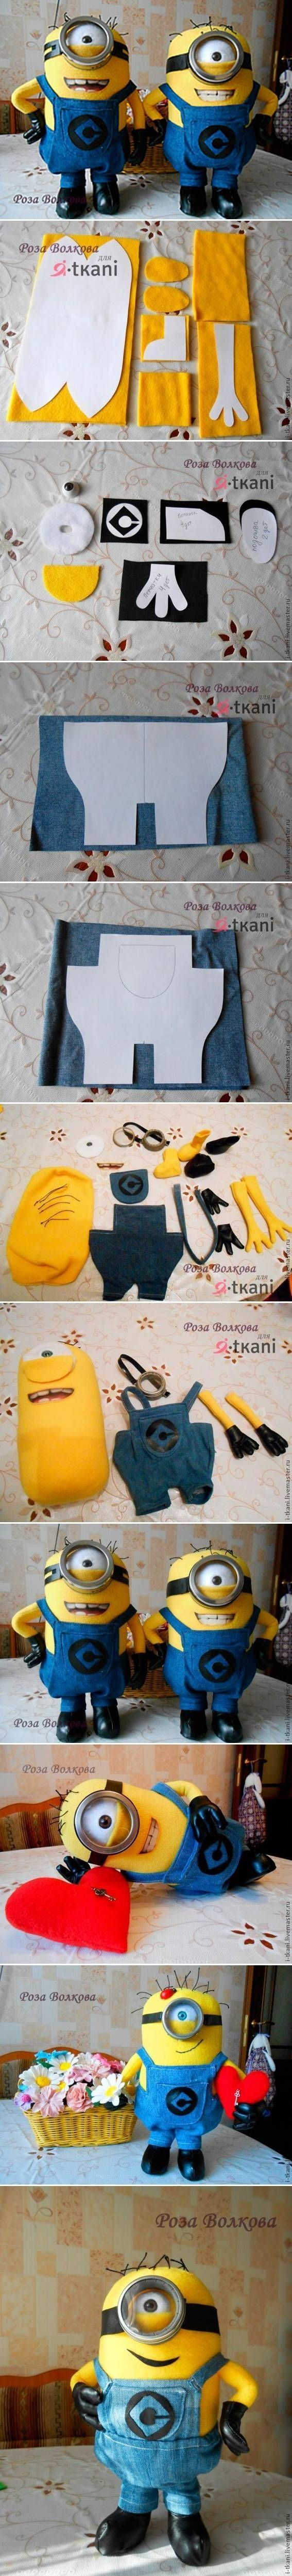 186 best minions images on pinterest despicable me funny minion